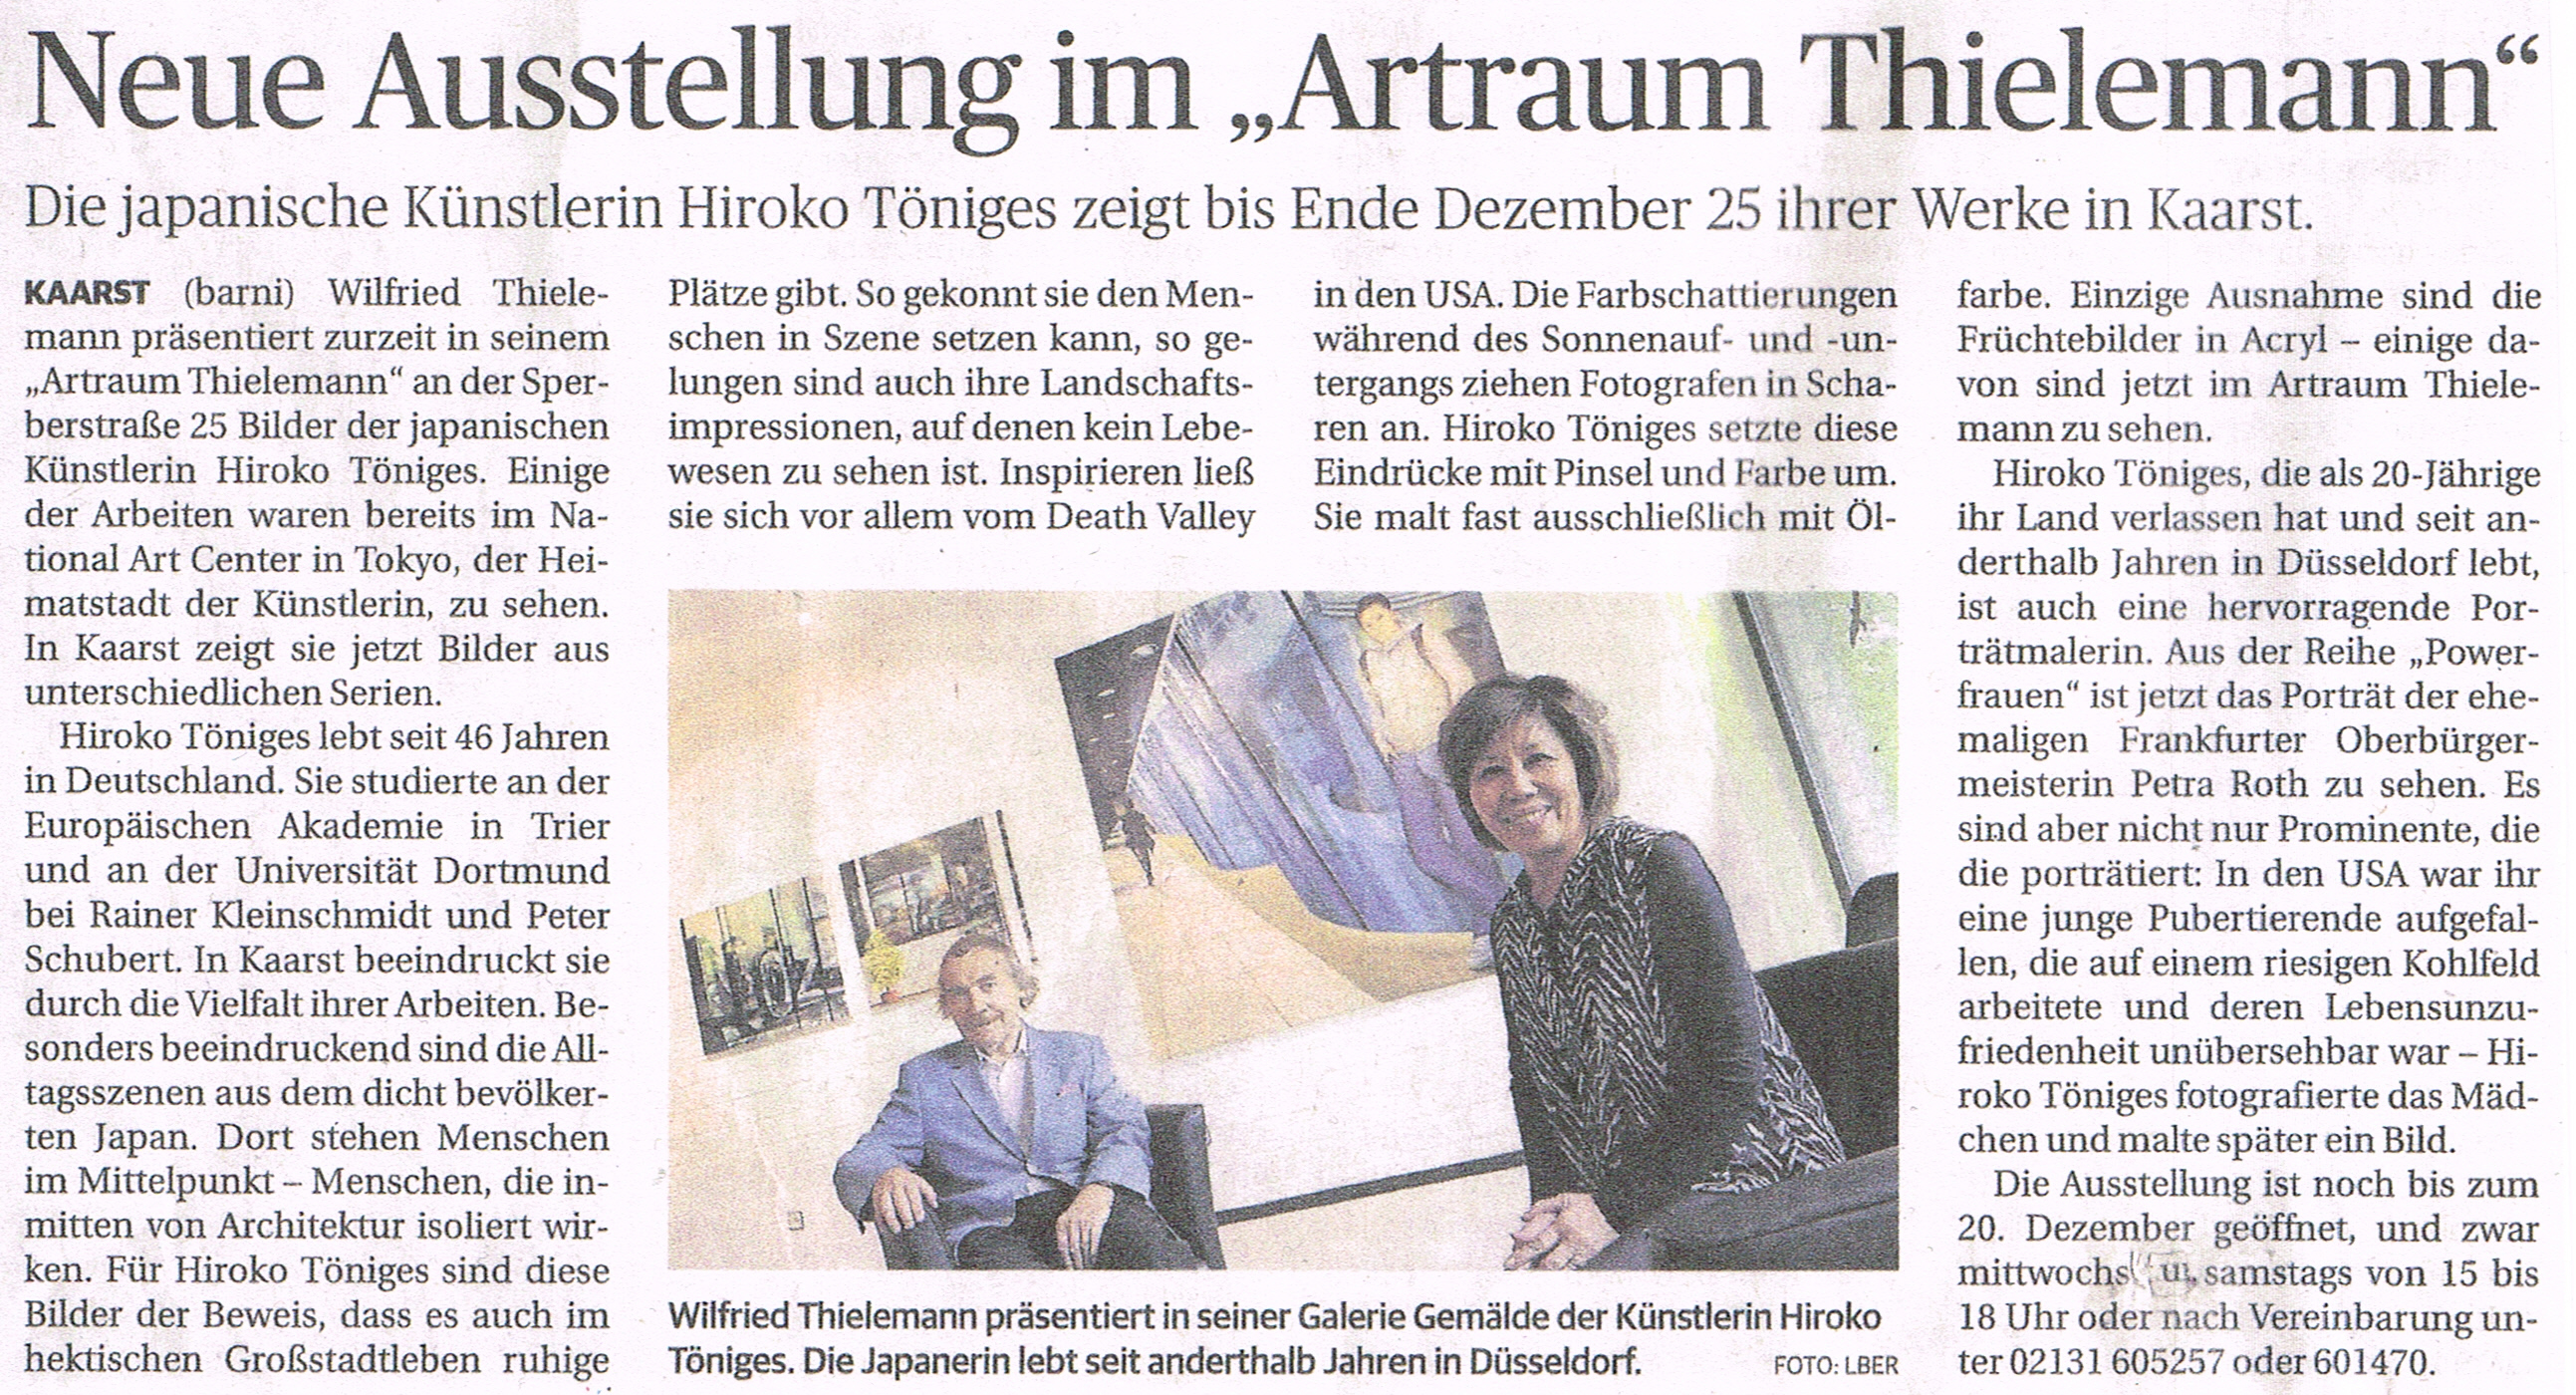 NGZ/RP vom 15.10.2014